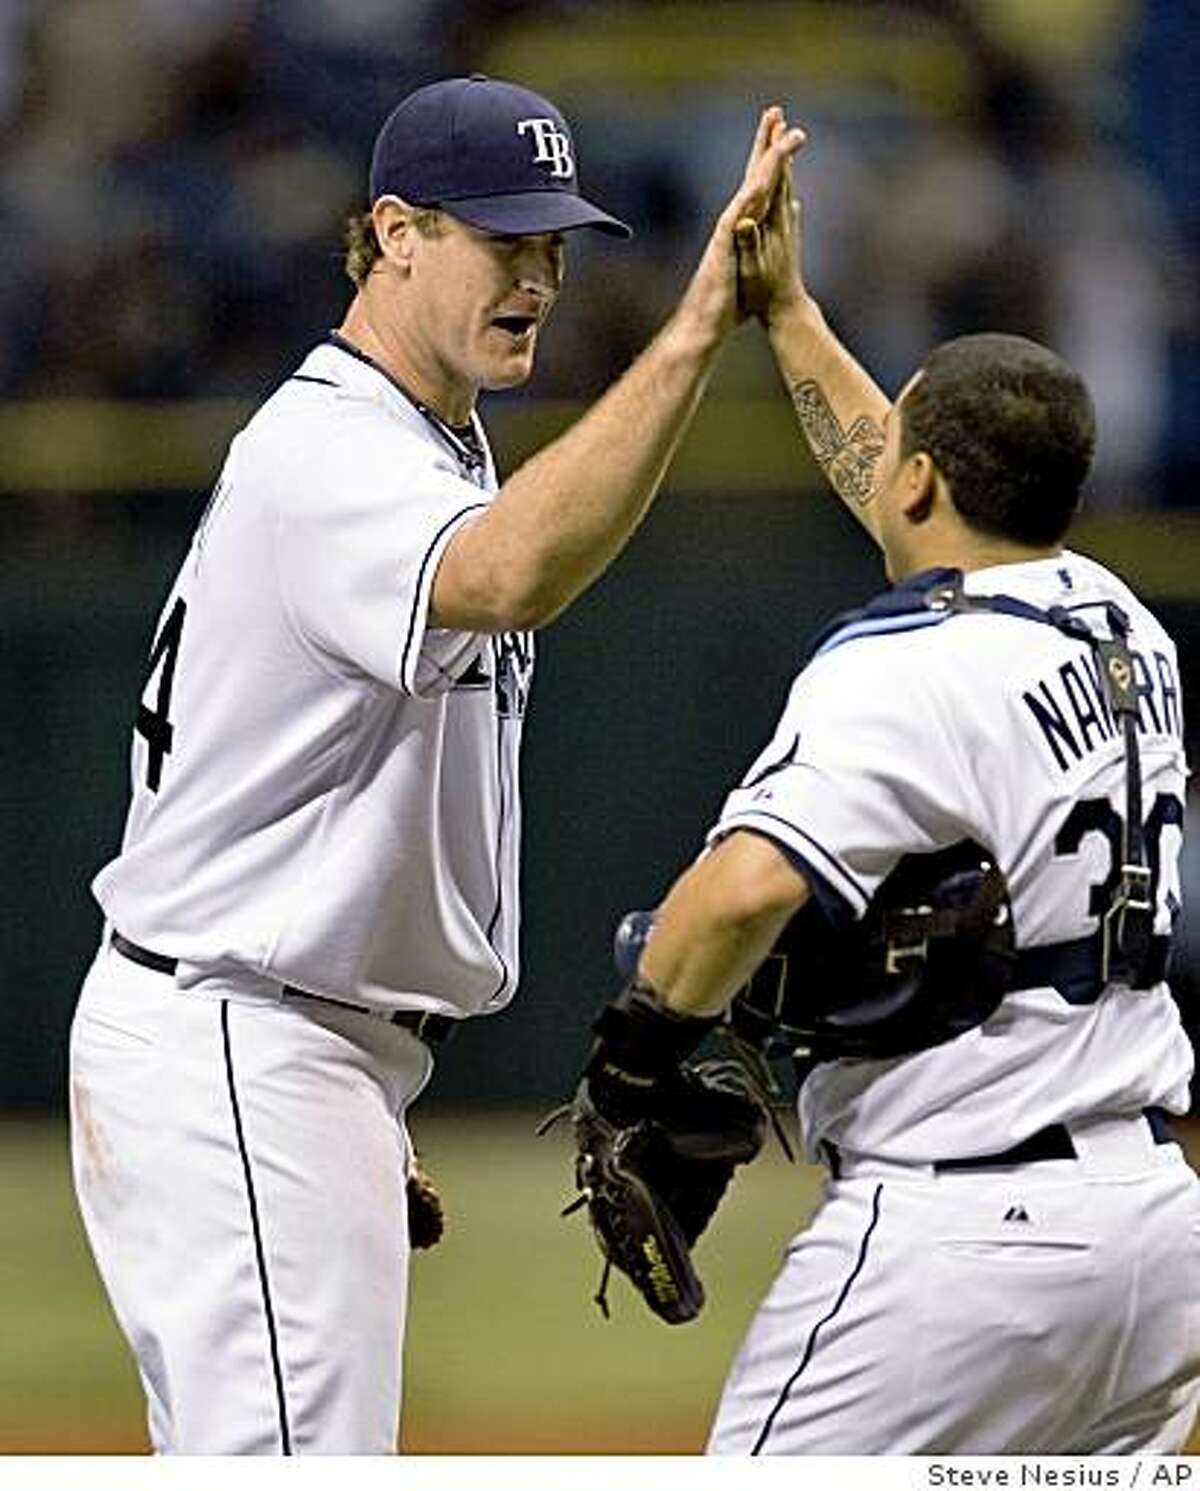 Tampa Bay Rays starter Jeff Niemann celebrates with catcher Dioner Navarro (30) after the final out of Niemann's 6-0 complete game shut out over the Oakland Athletics during a baseball game, Friday, July 10, 2009, in St. Petersburg, Fla. (AP Photo/Steve Nesius)